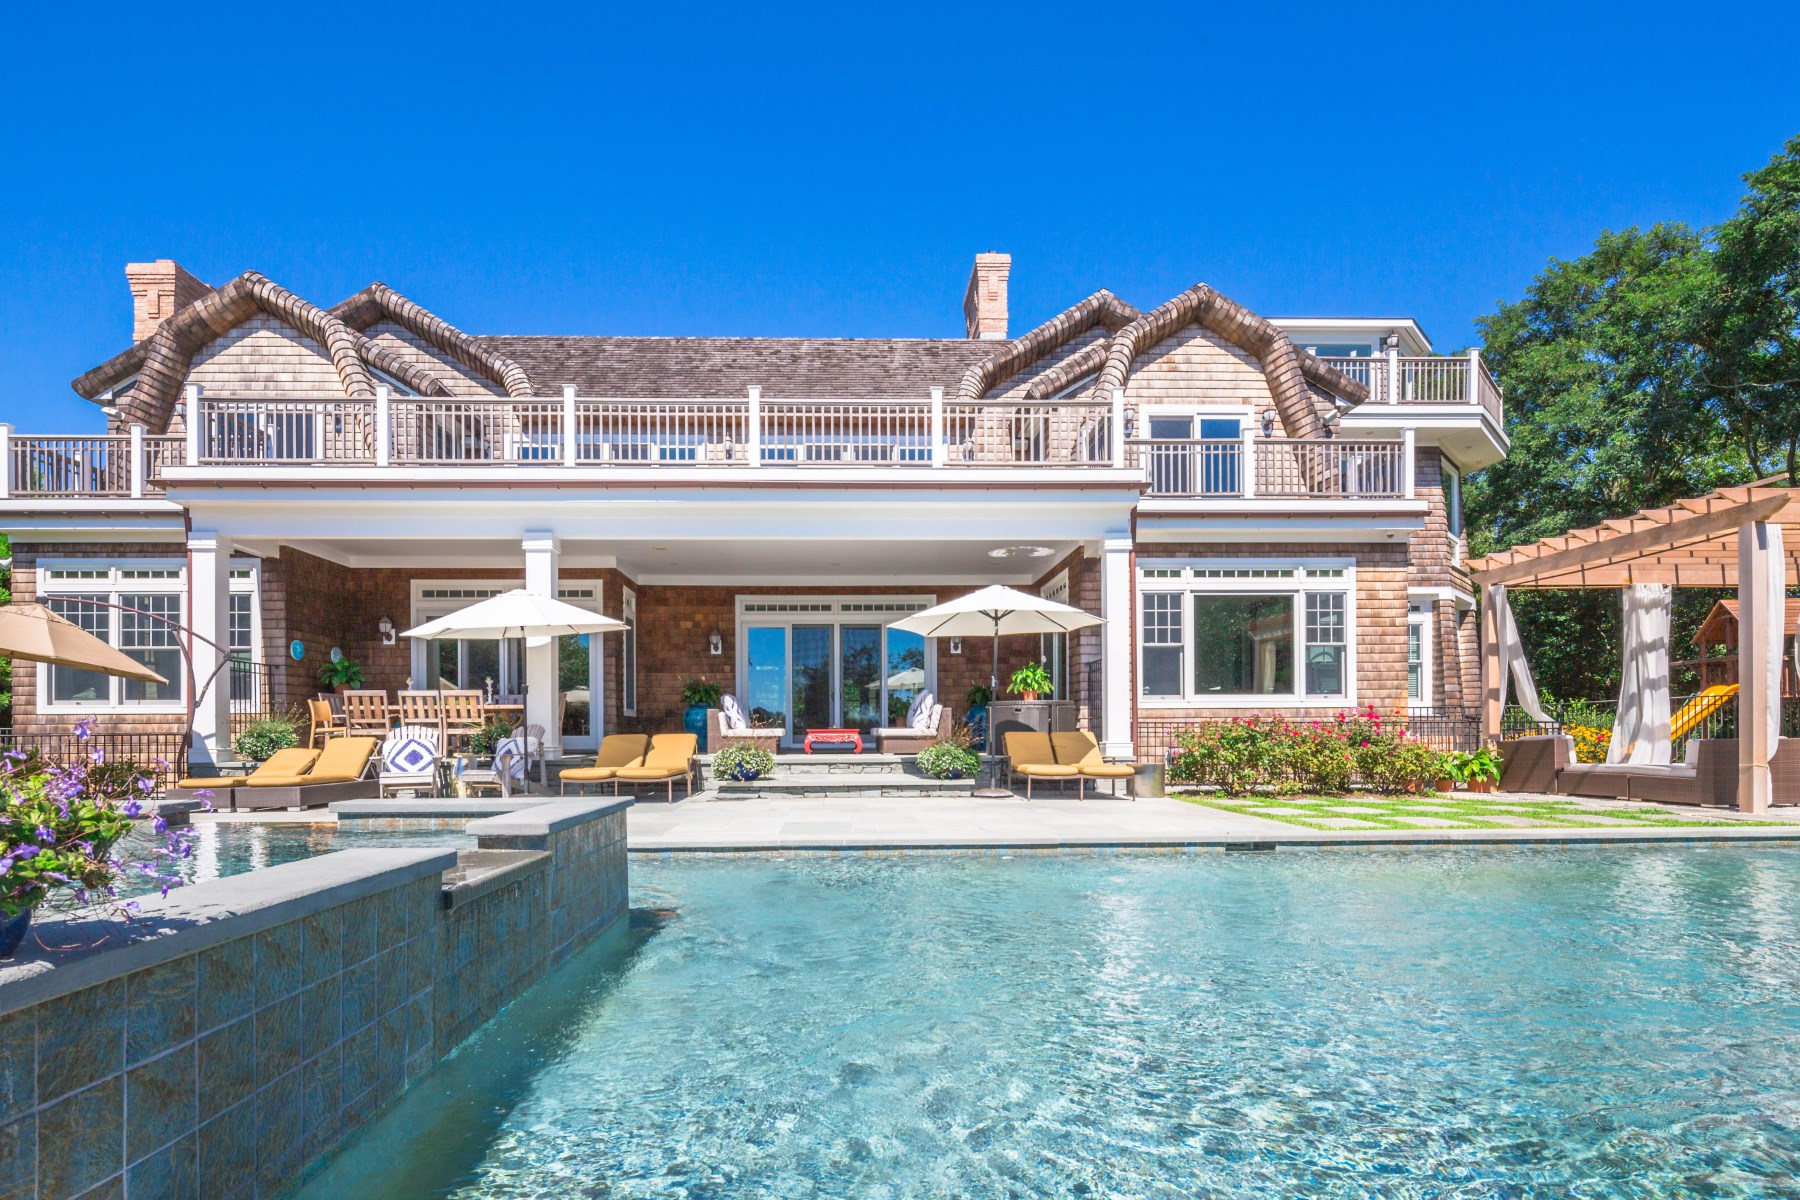 Single Family Home for Sale at Extraordinary Waterfront Estate 21 Kellis Way Bridgehampton, New York, 11932 United States